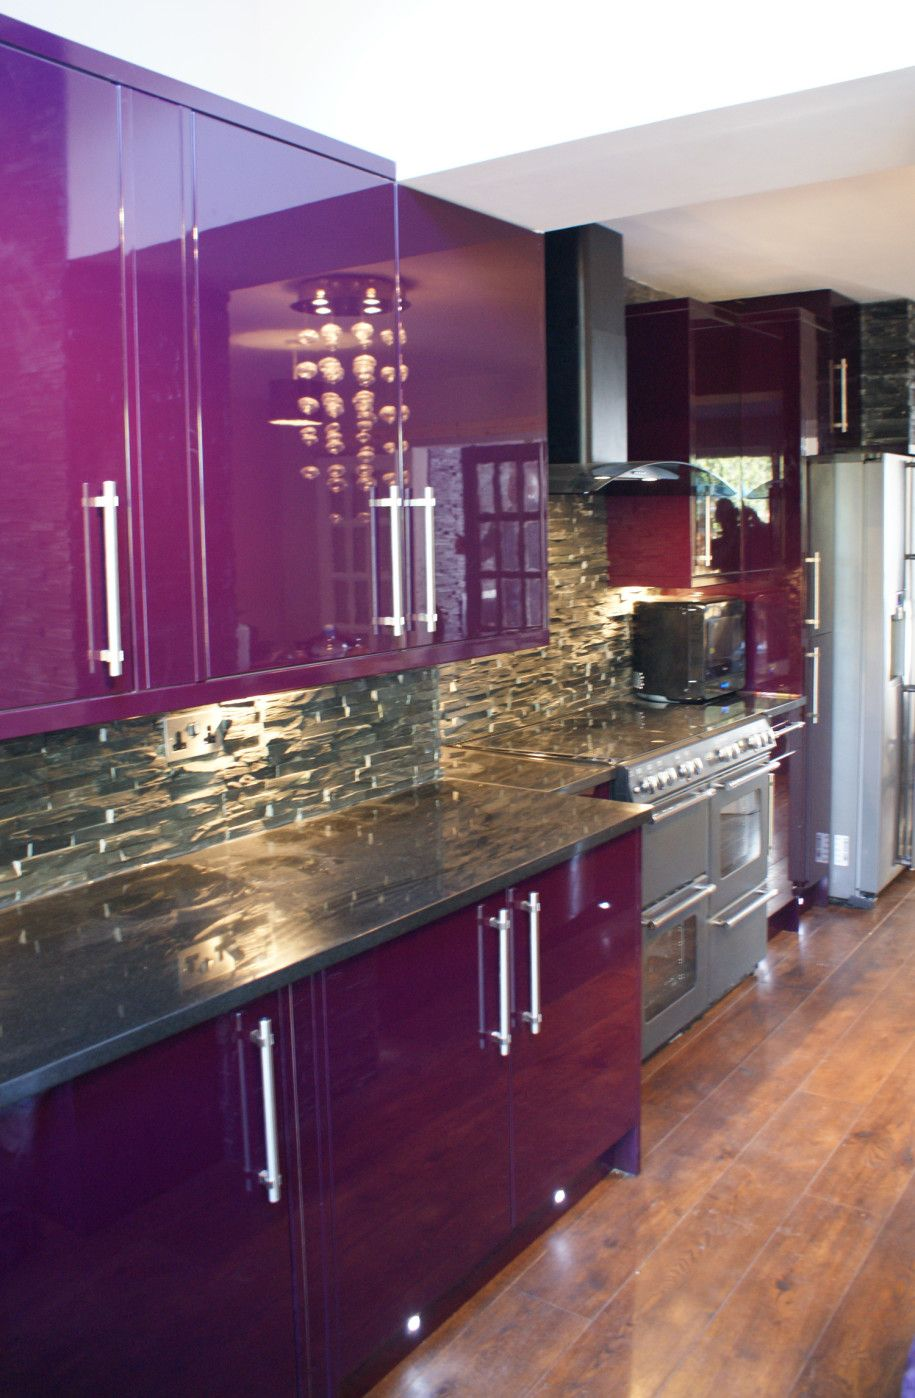 Enthralling Purple Kitchen Design With Purple Kitchen Cabinet And